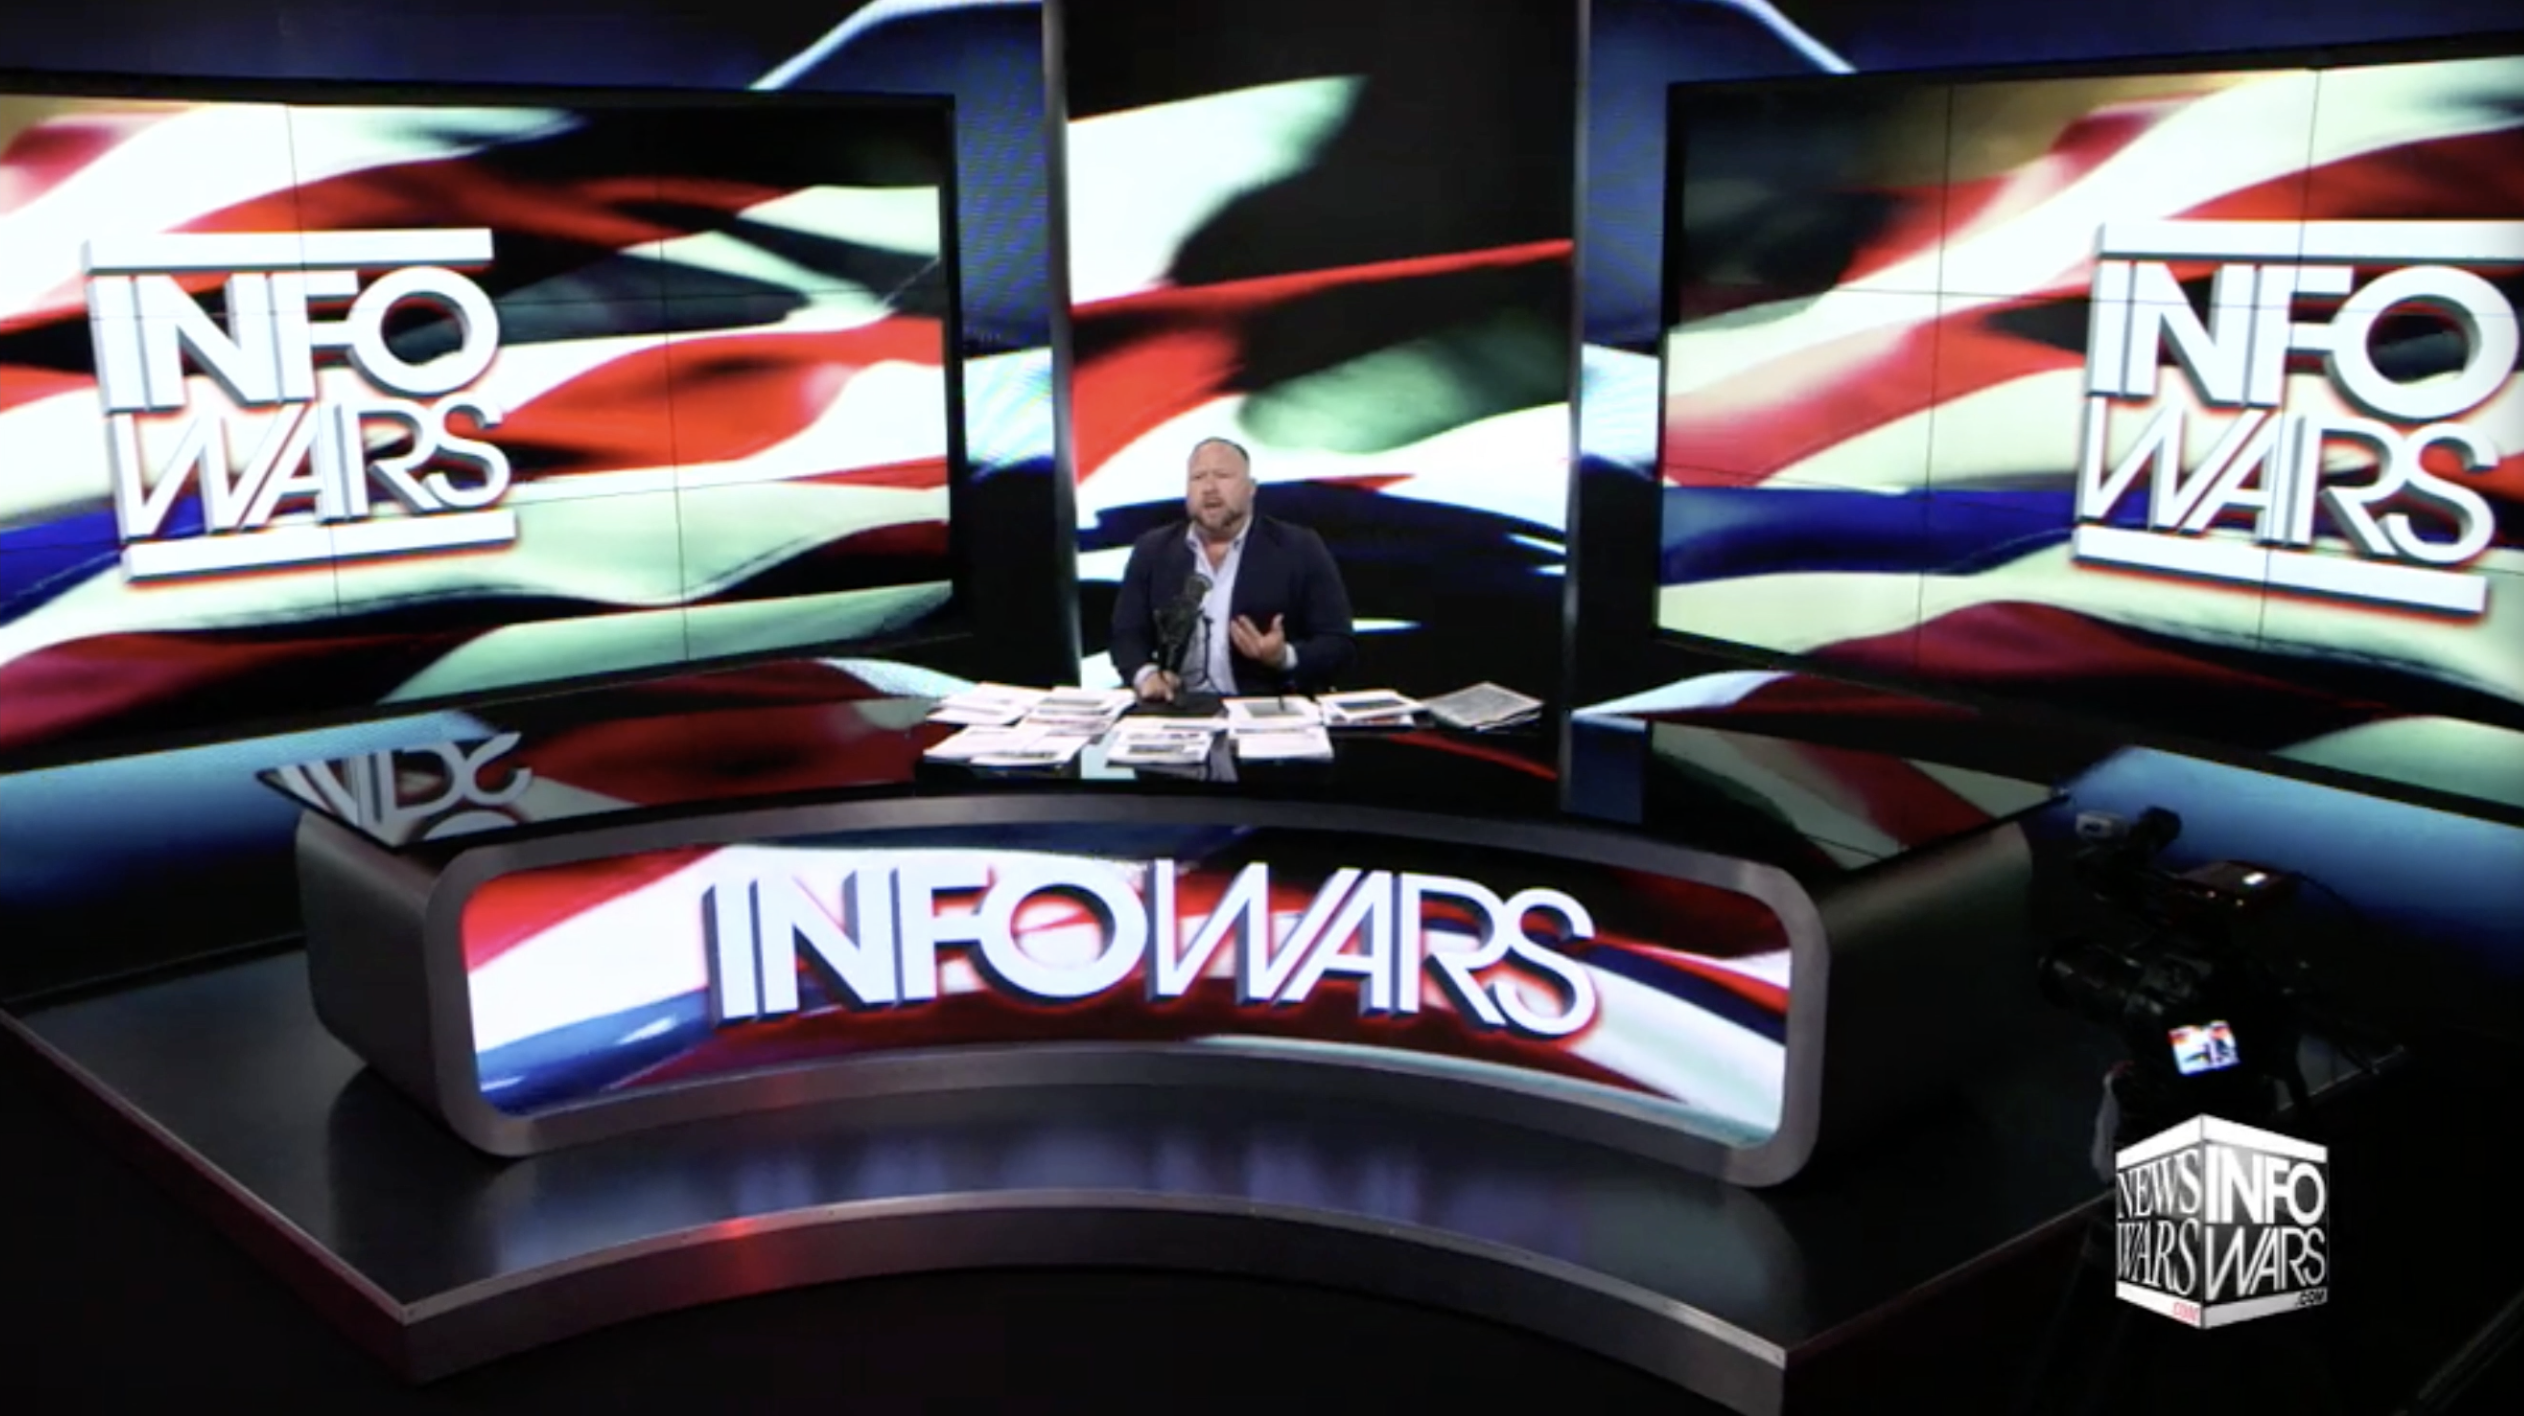 Alex Jones Infowars Studio EXZM August 13th 2020